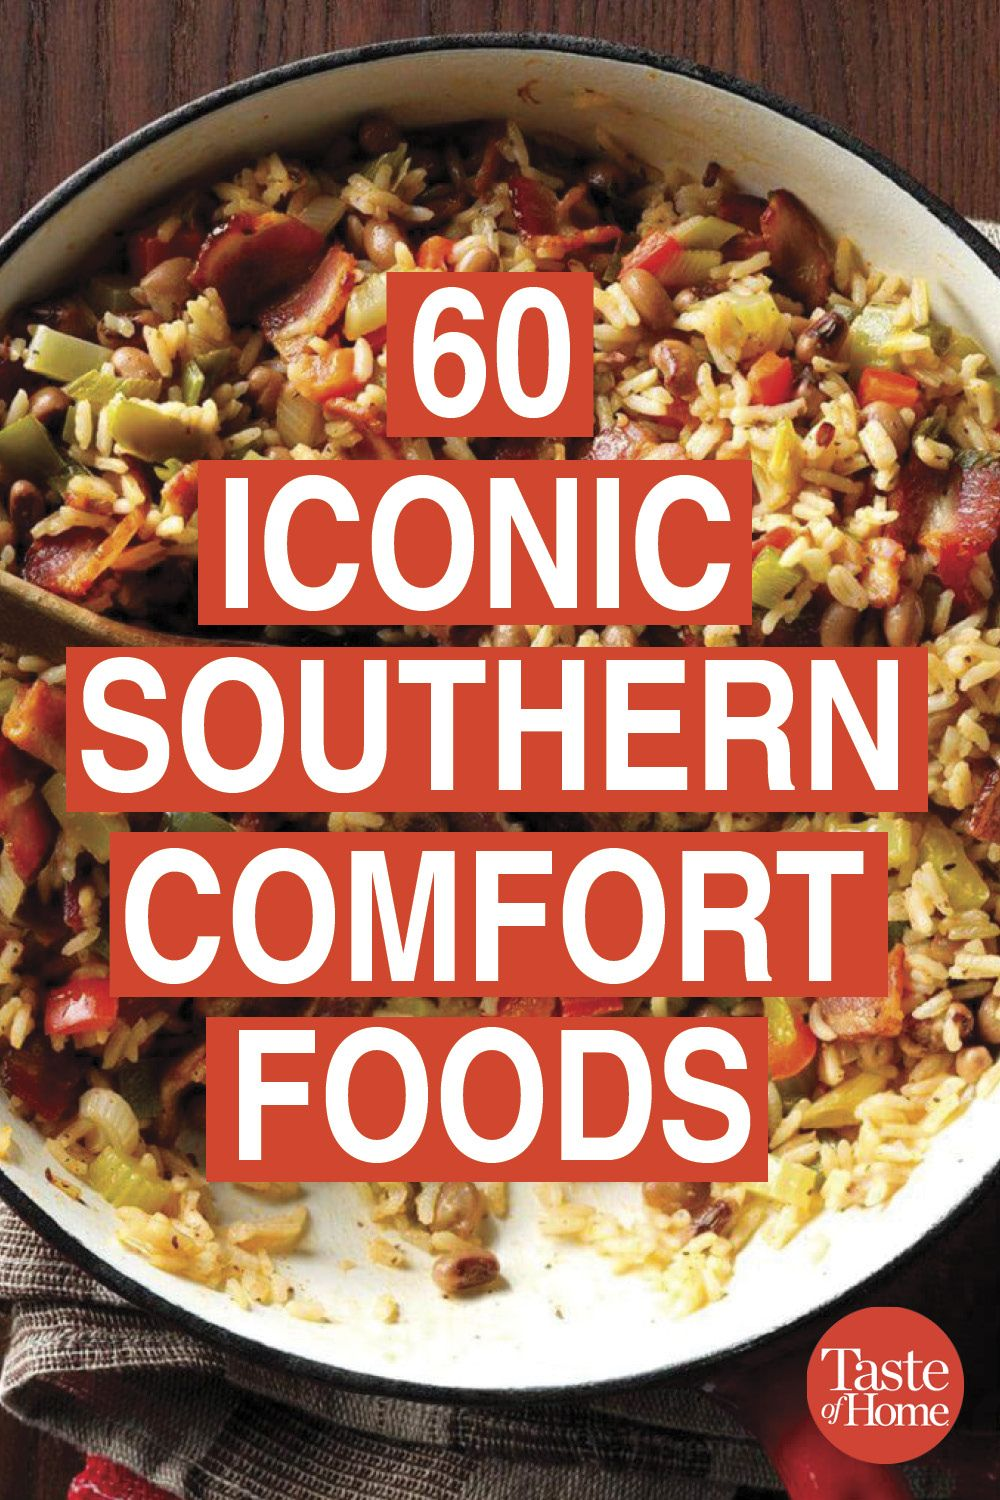 60 Iconic Southern Comfort Foods With Images Southern Recipes